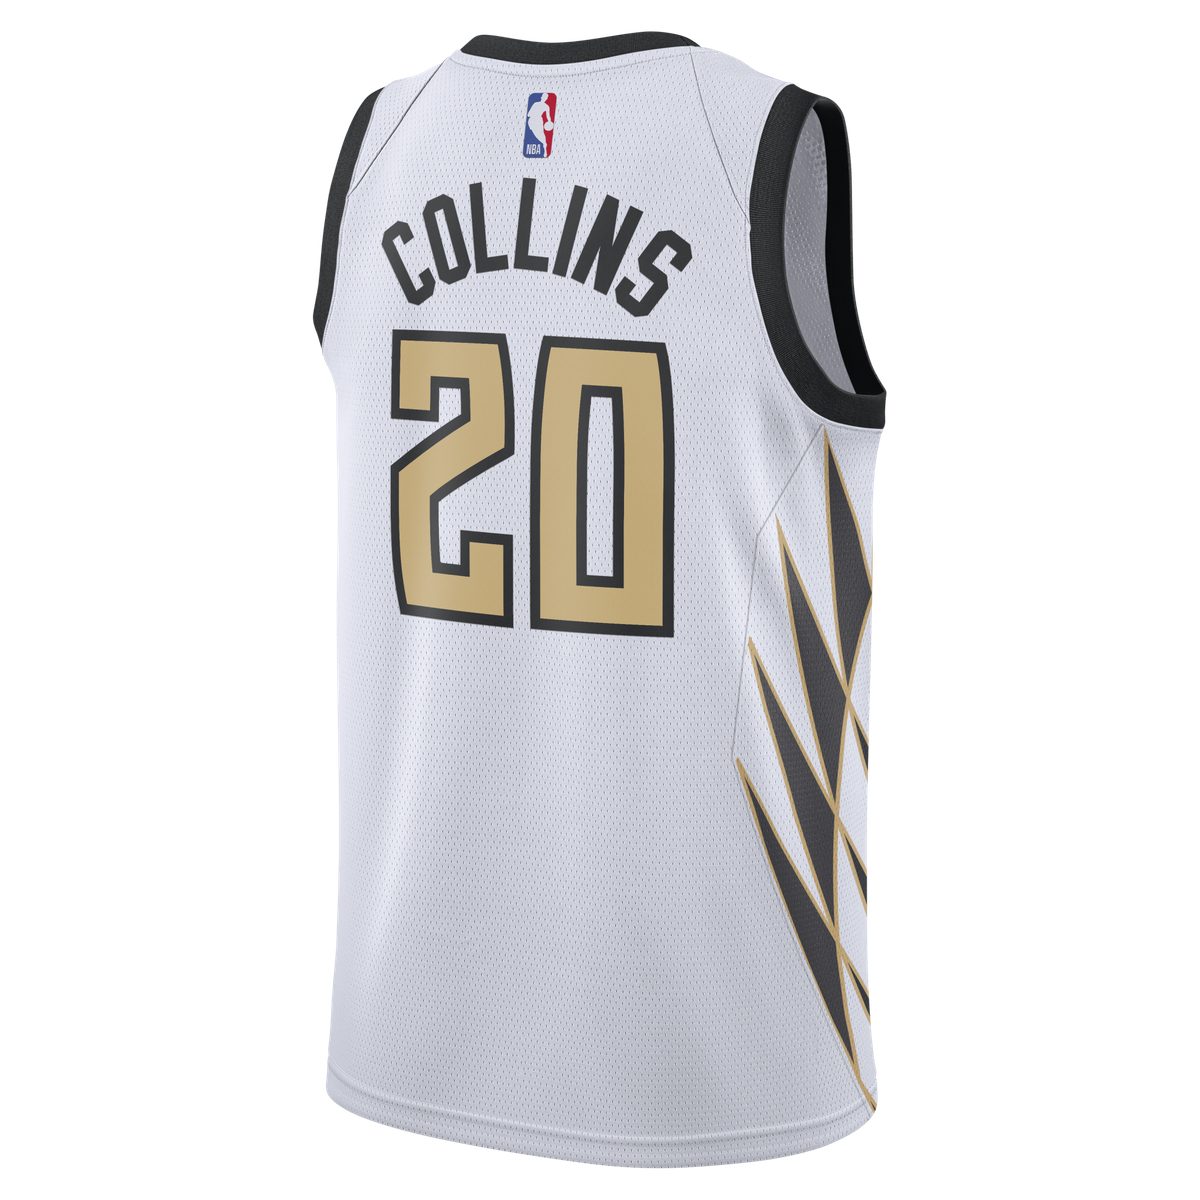 John Collins Nike Swingman Jersey - City Edition for  109.99 Fanatics 03ce13f8a